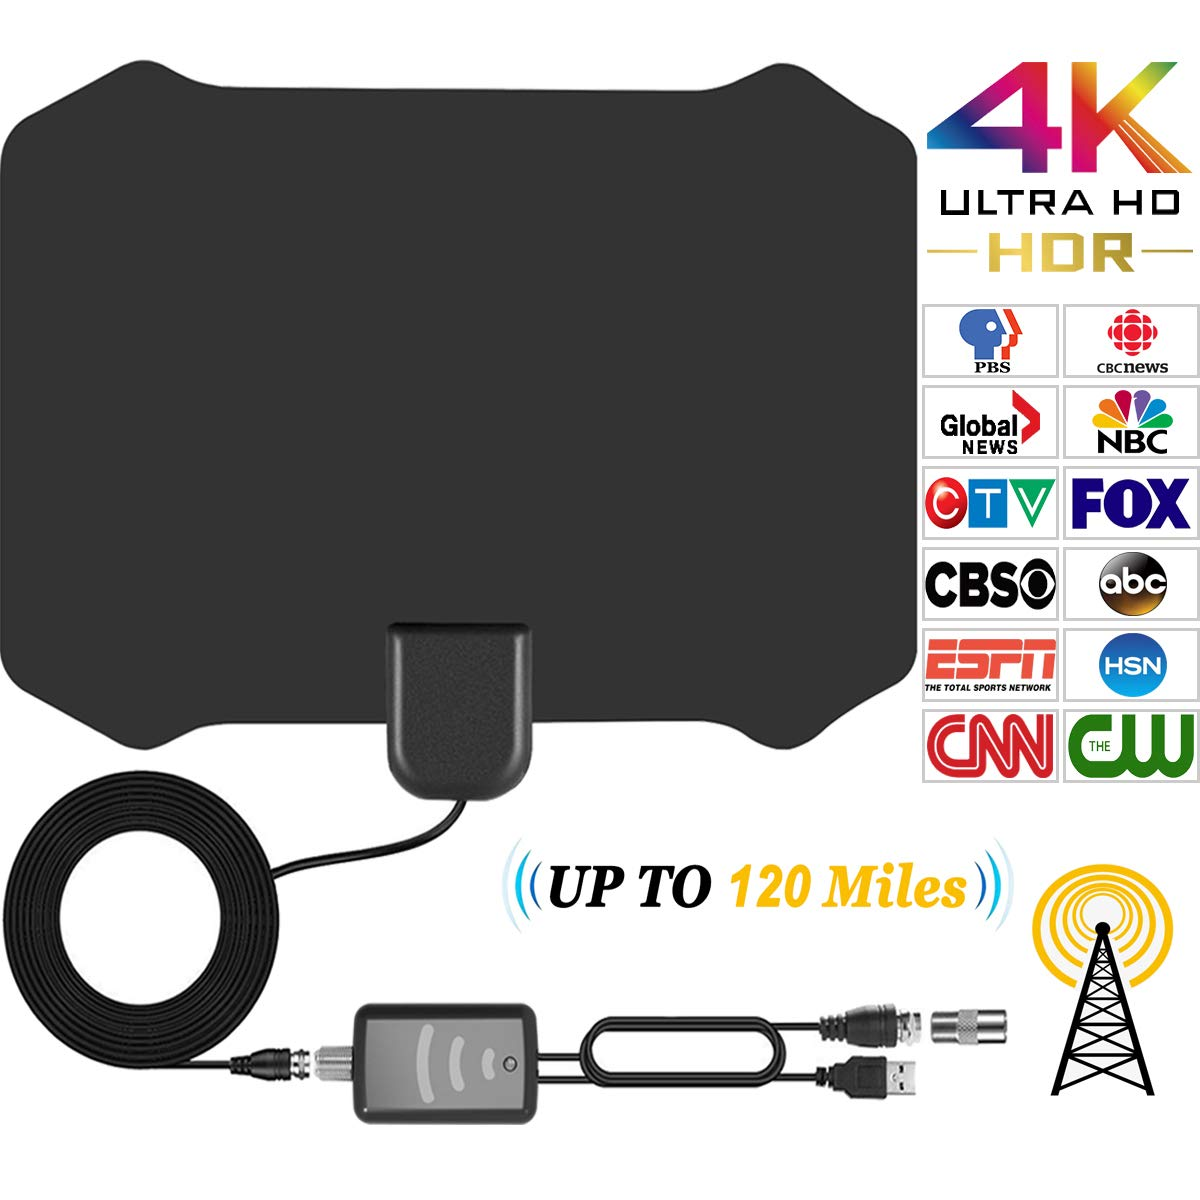 TV Antenna HD Indoor HDTV Antenna for Digital TV With 120 Miles Long Range Support 4K 1080p & All Older TV's With Powerful Detachable Amplifier Signal Booster, Power Adapter and Longer Coax Cable [2018 Upgraded] Papakoyal Direct